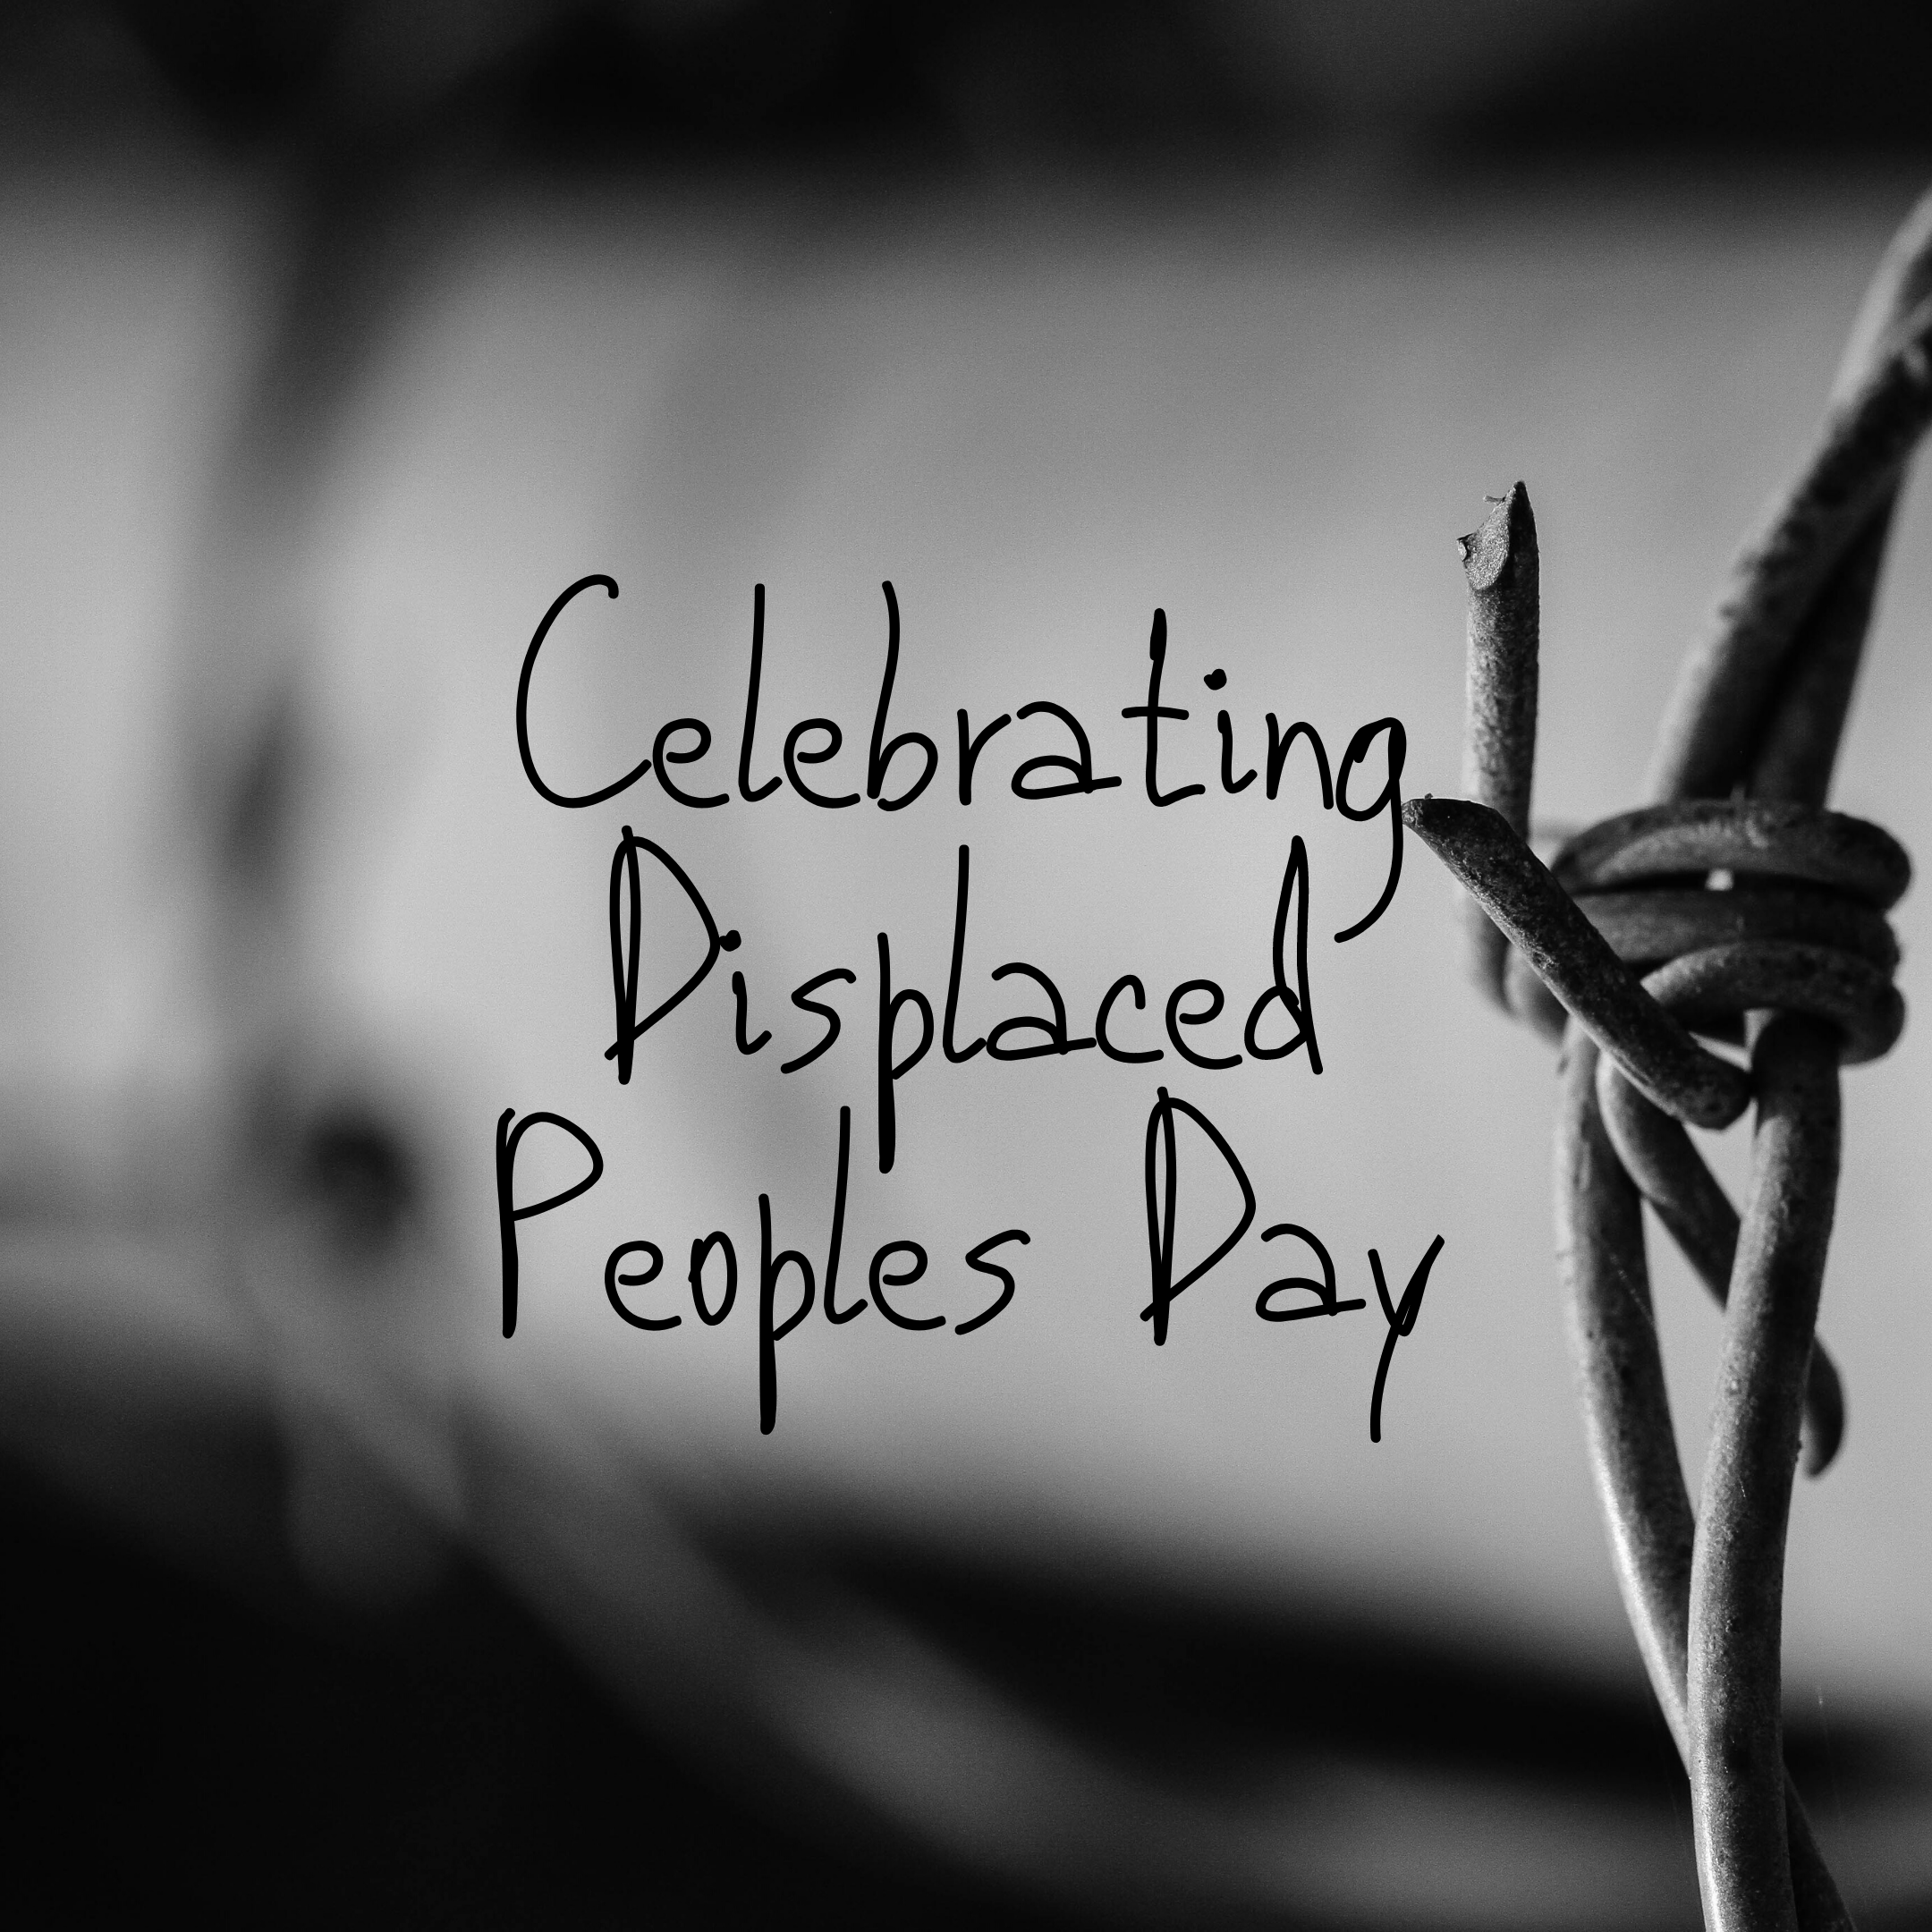 Making My Own Meaning: Displaced Peoples Day